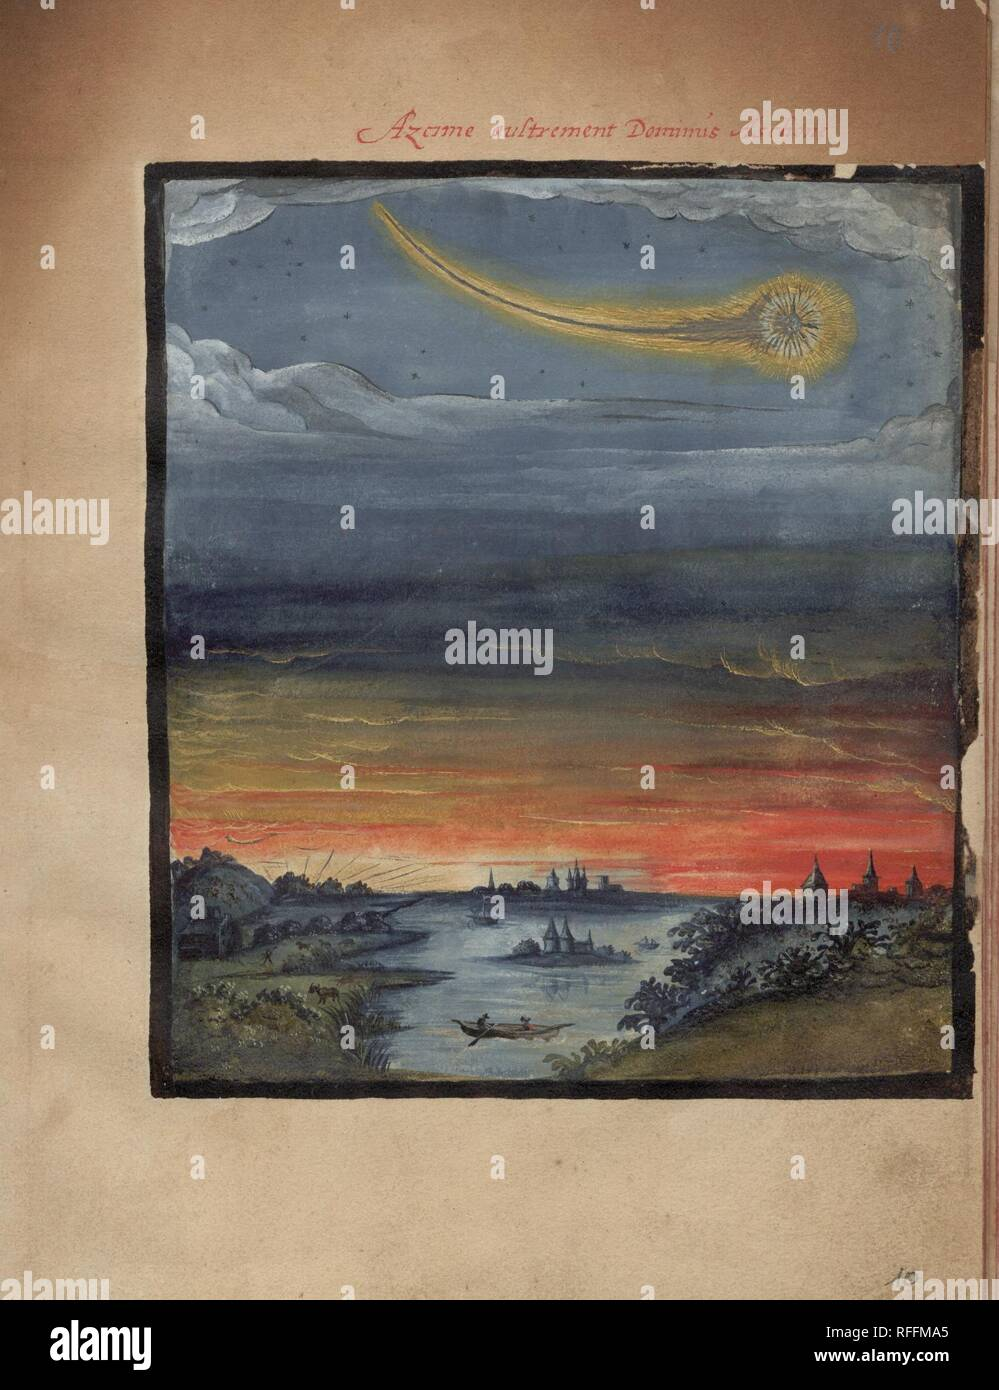 The Comet Book ('Kometenbuch') is a 16th century album of stylised watercolour sketches of both comets and meteors - Azome austrement D.jpg - RFFMA5 1RFFMA5 - Stock Image